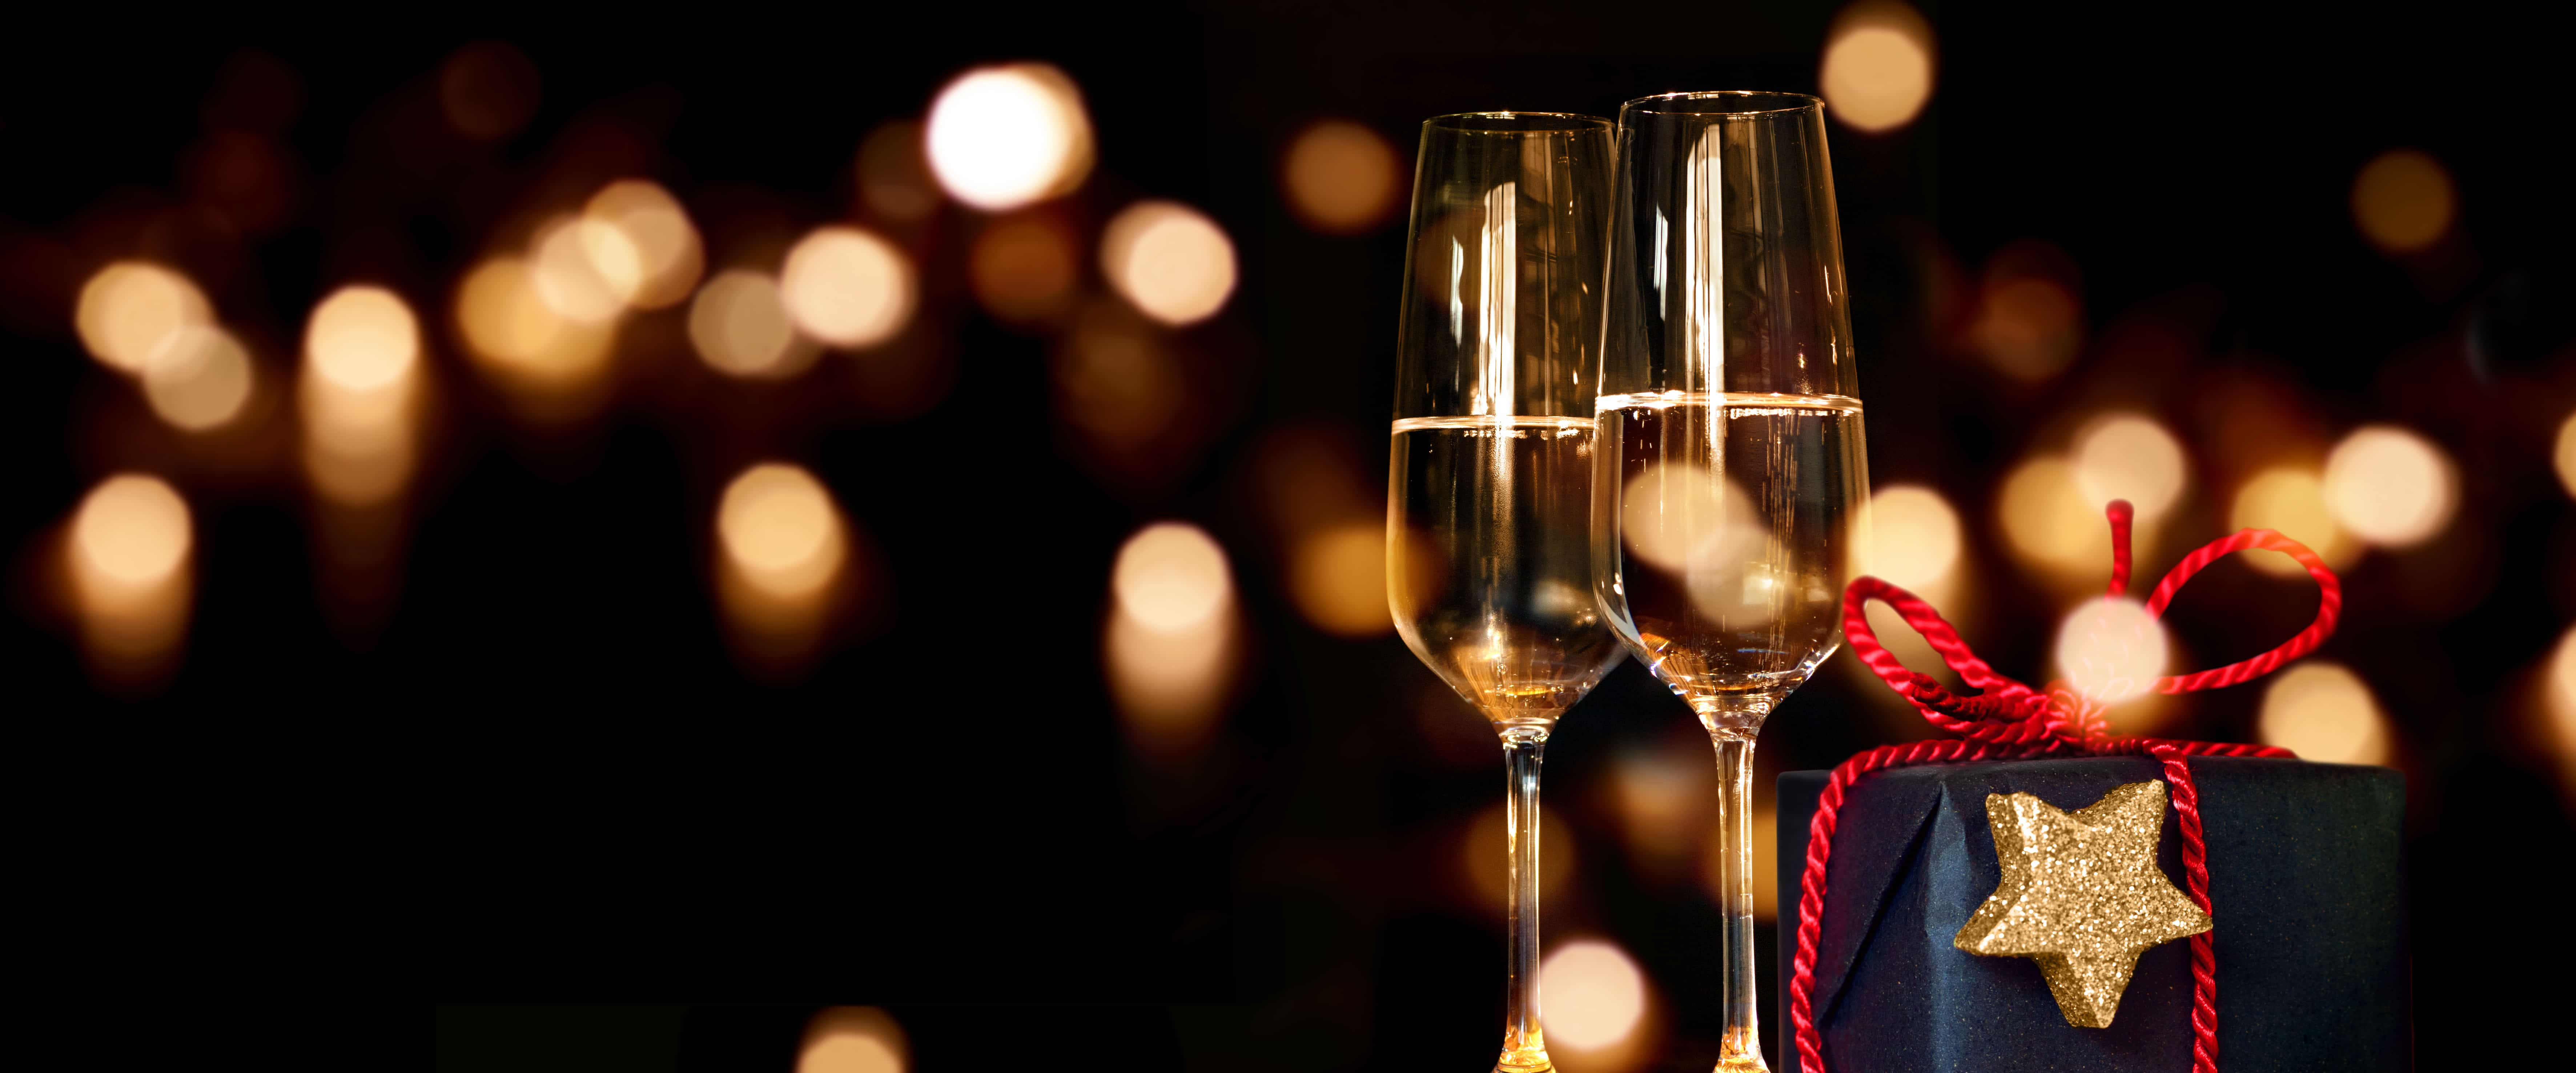 Champagne Holiday Gifts are a great festive choice